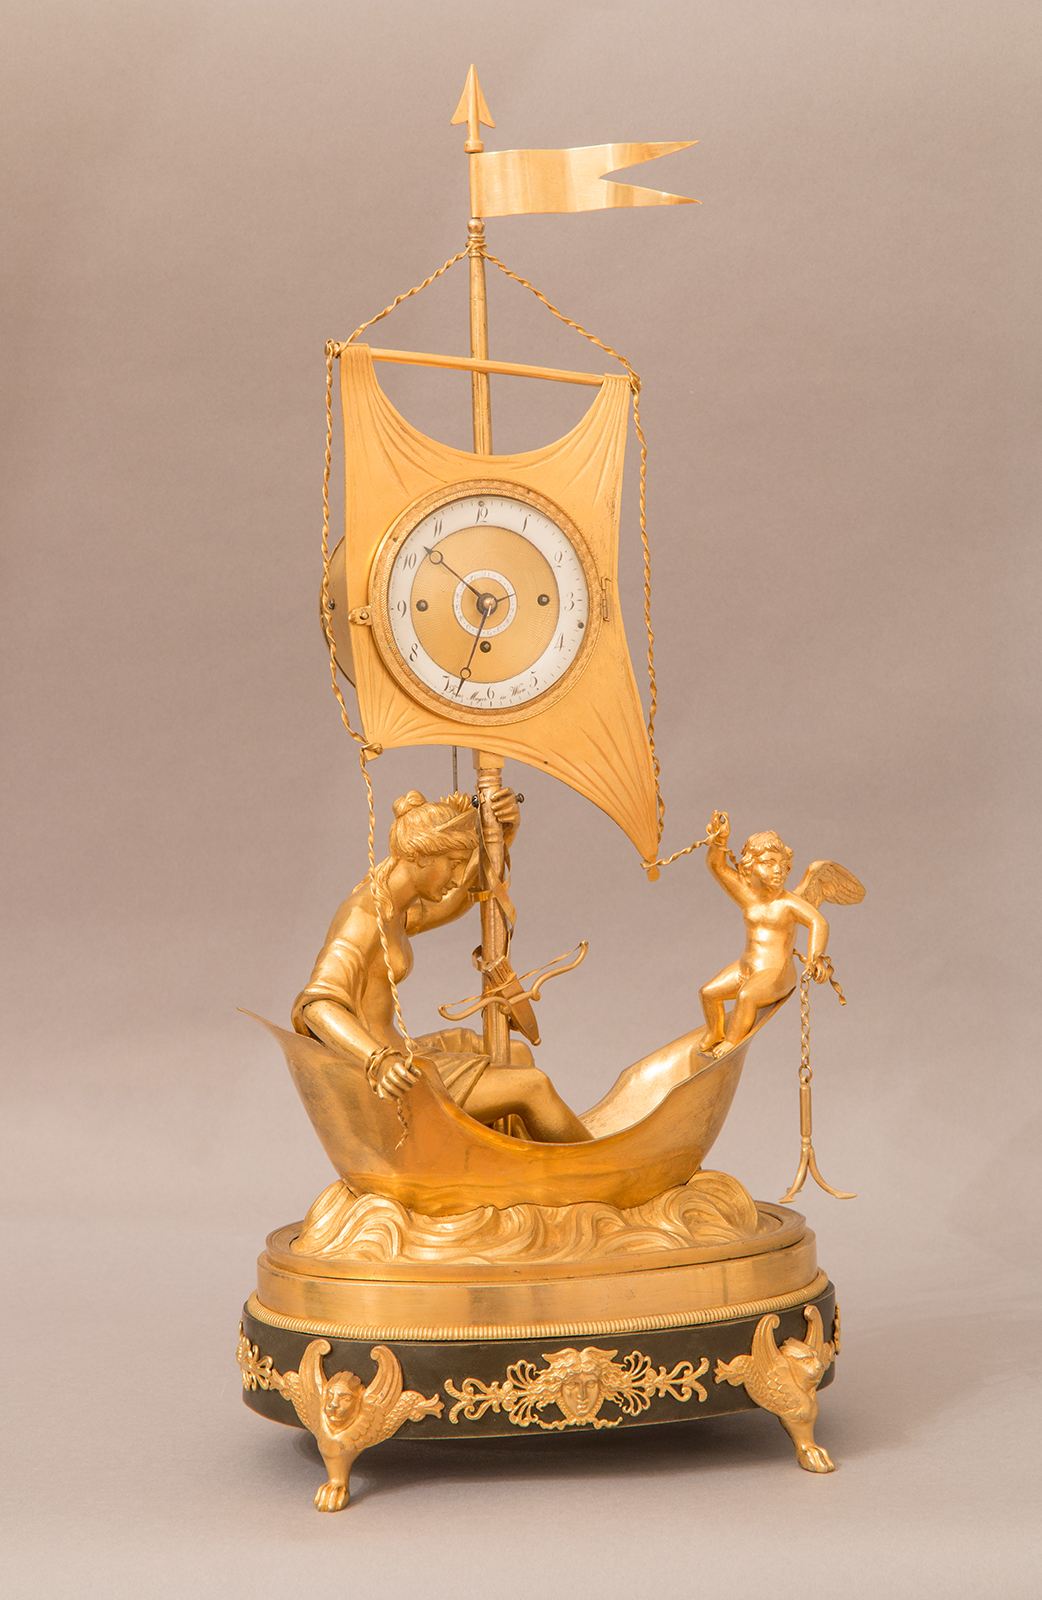 Empire mantel clock by Franz Mayer, c. 1806.